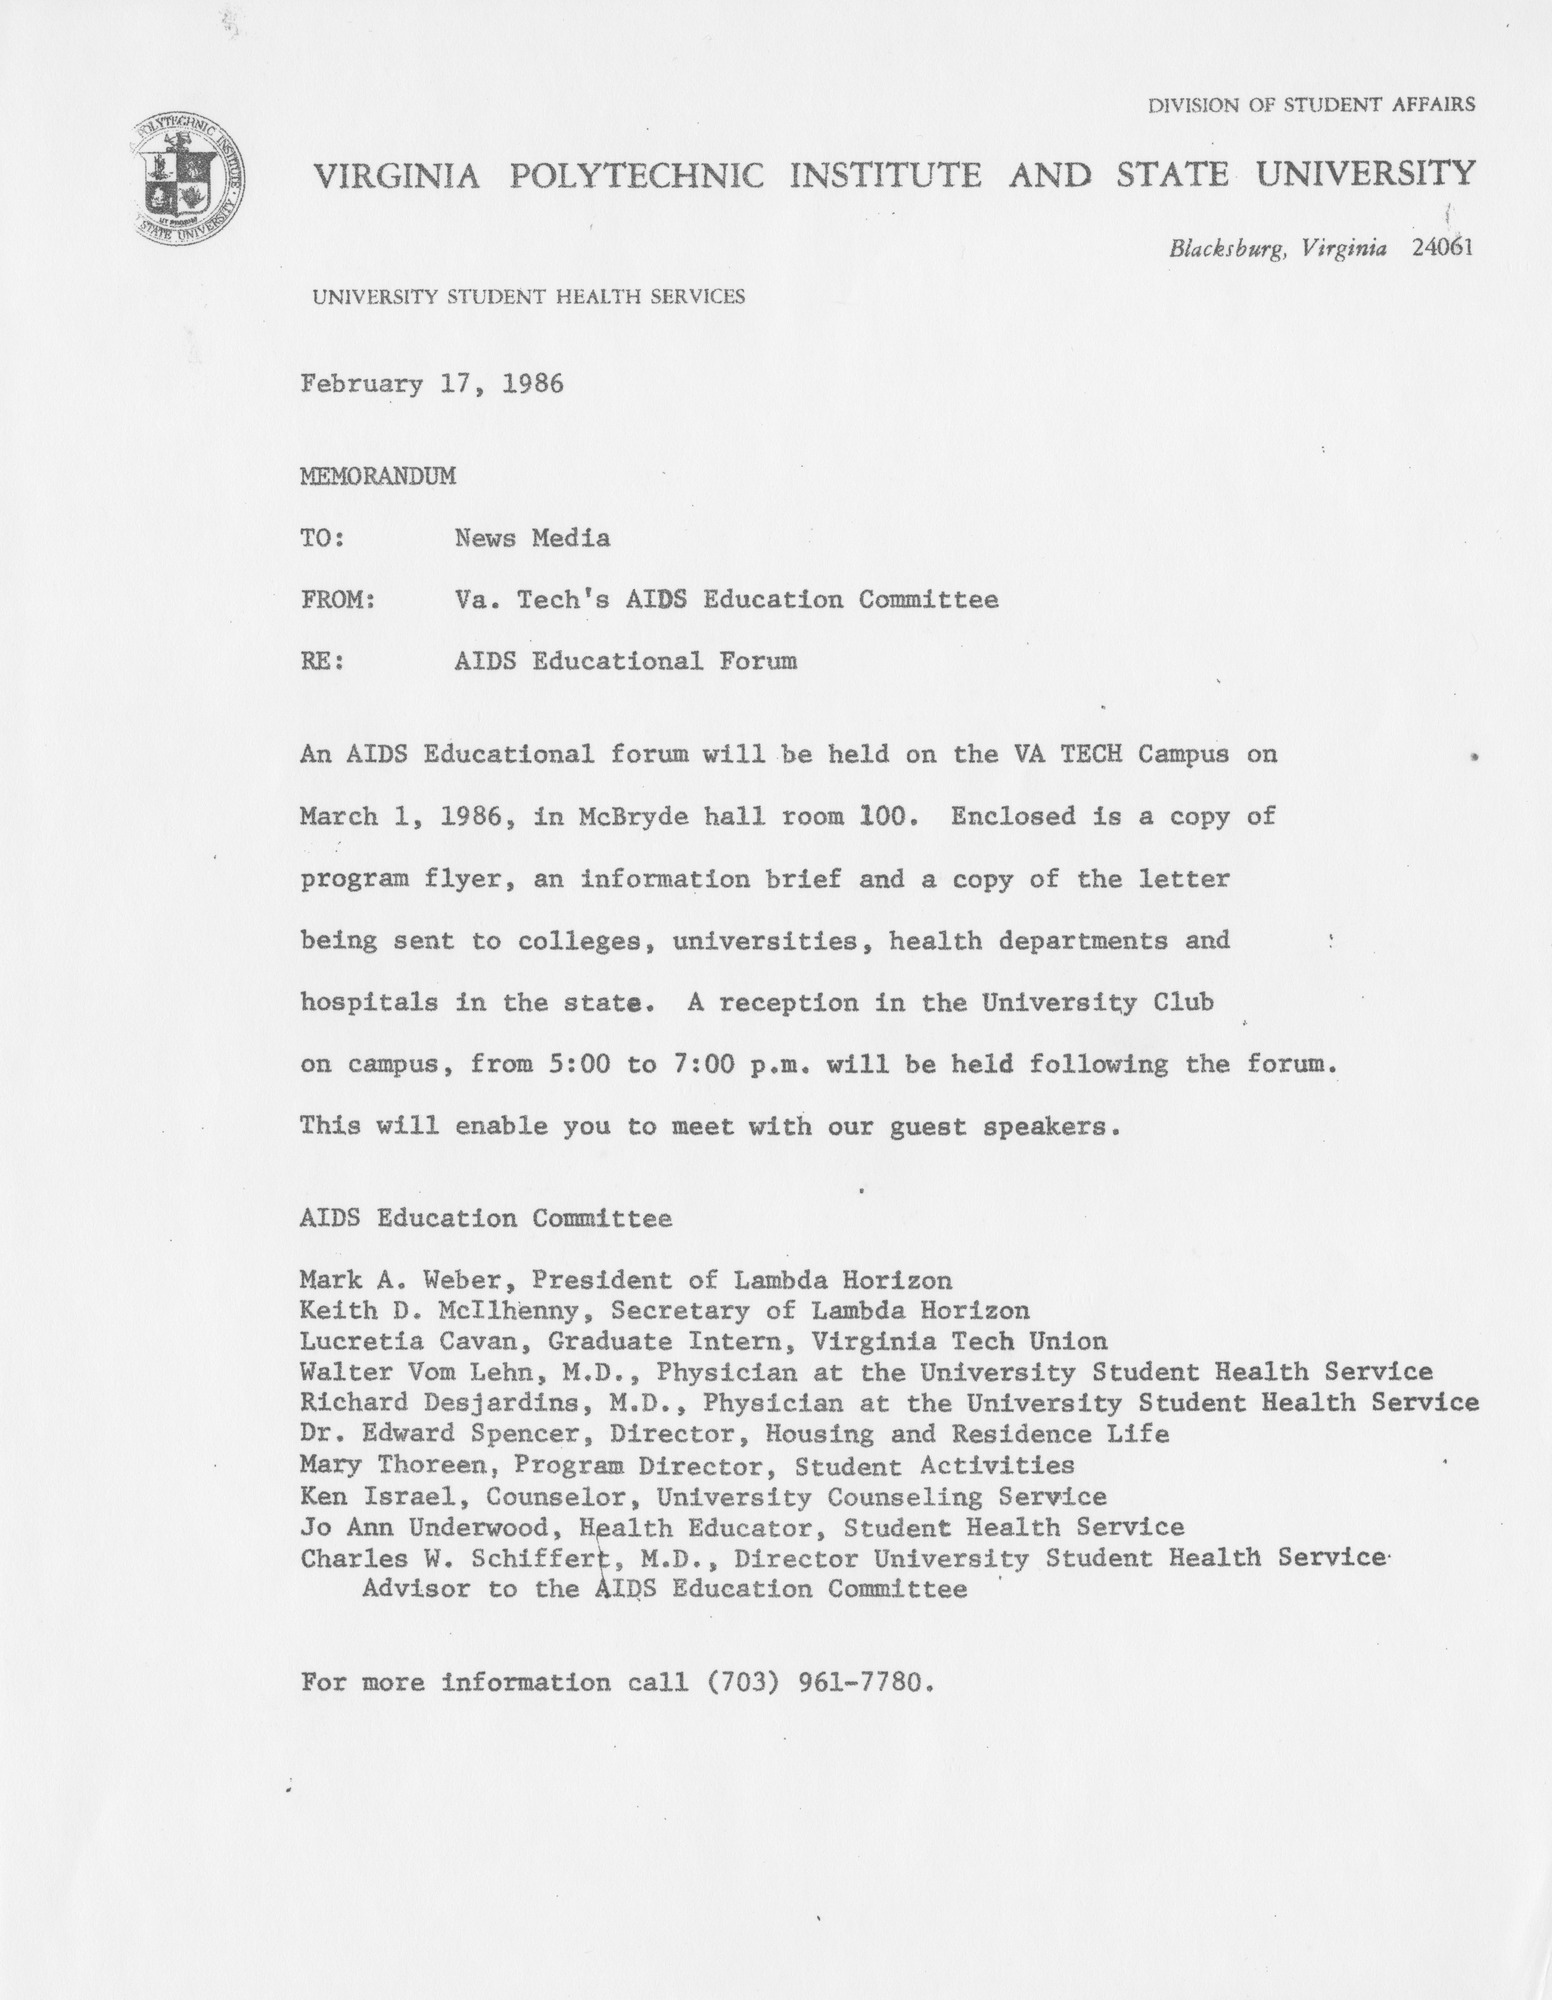 Ms2014-010_WeberMark_PressReleaseAIDSEducation_1986_0217.jpg